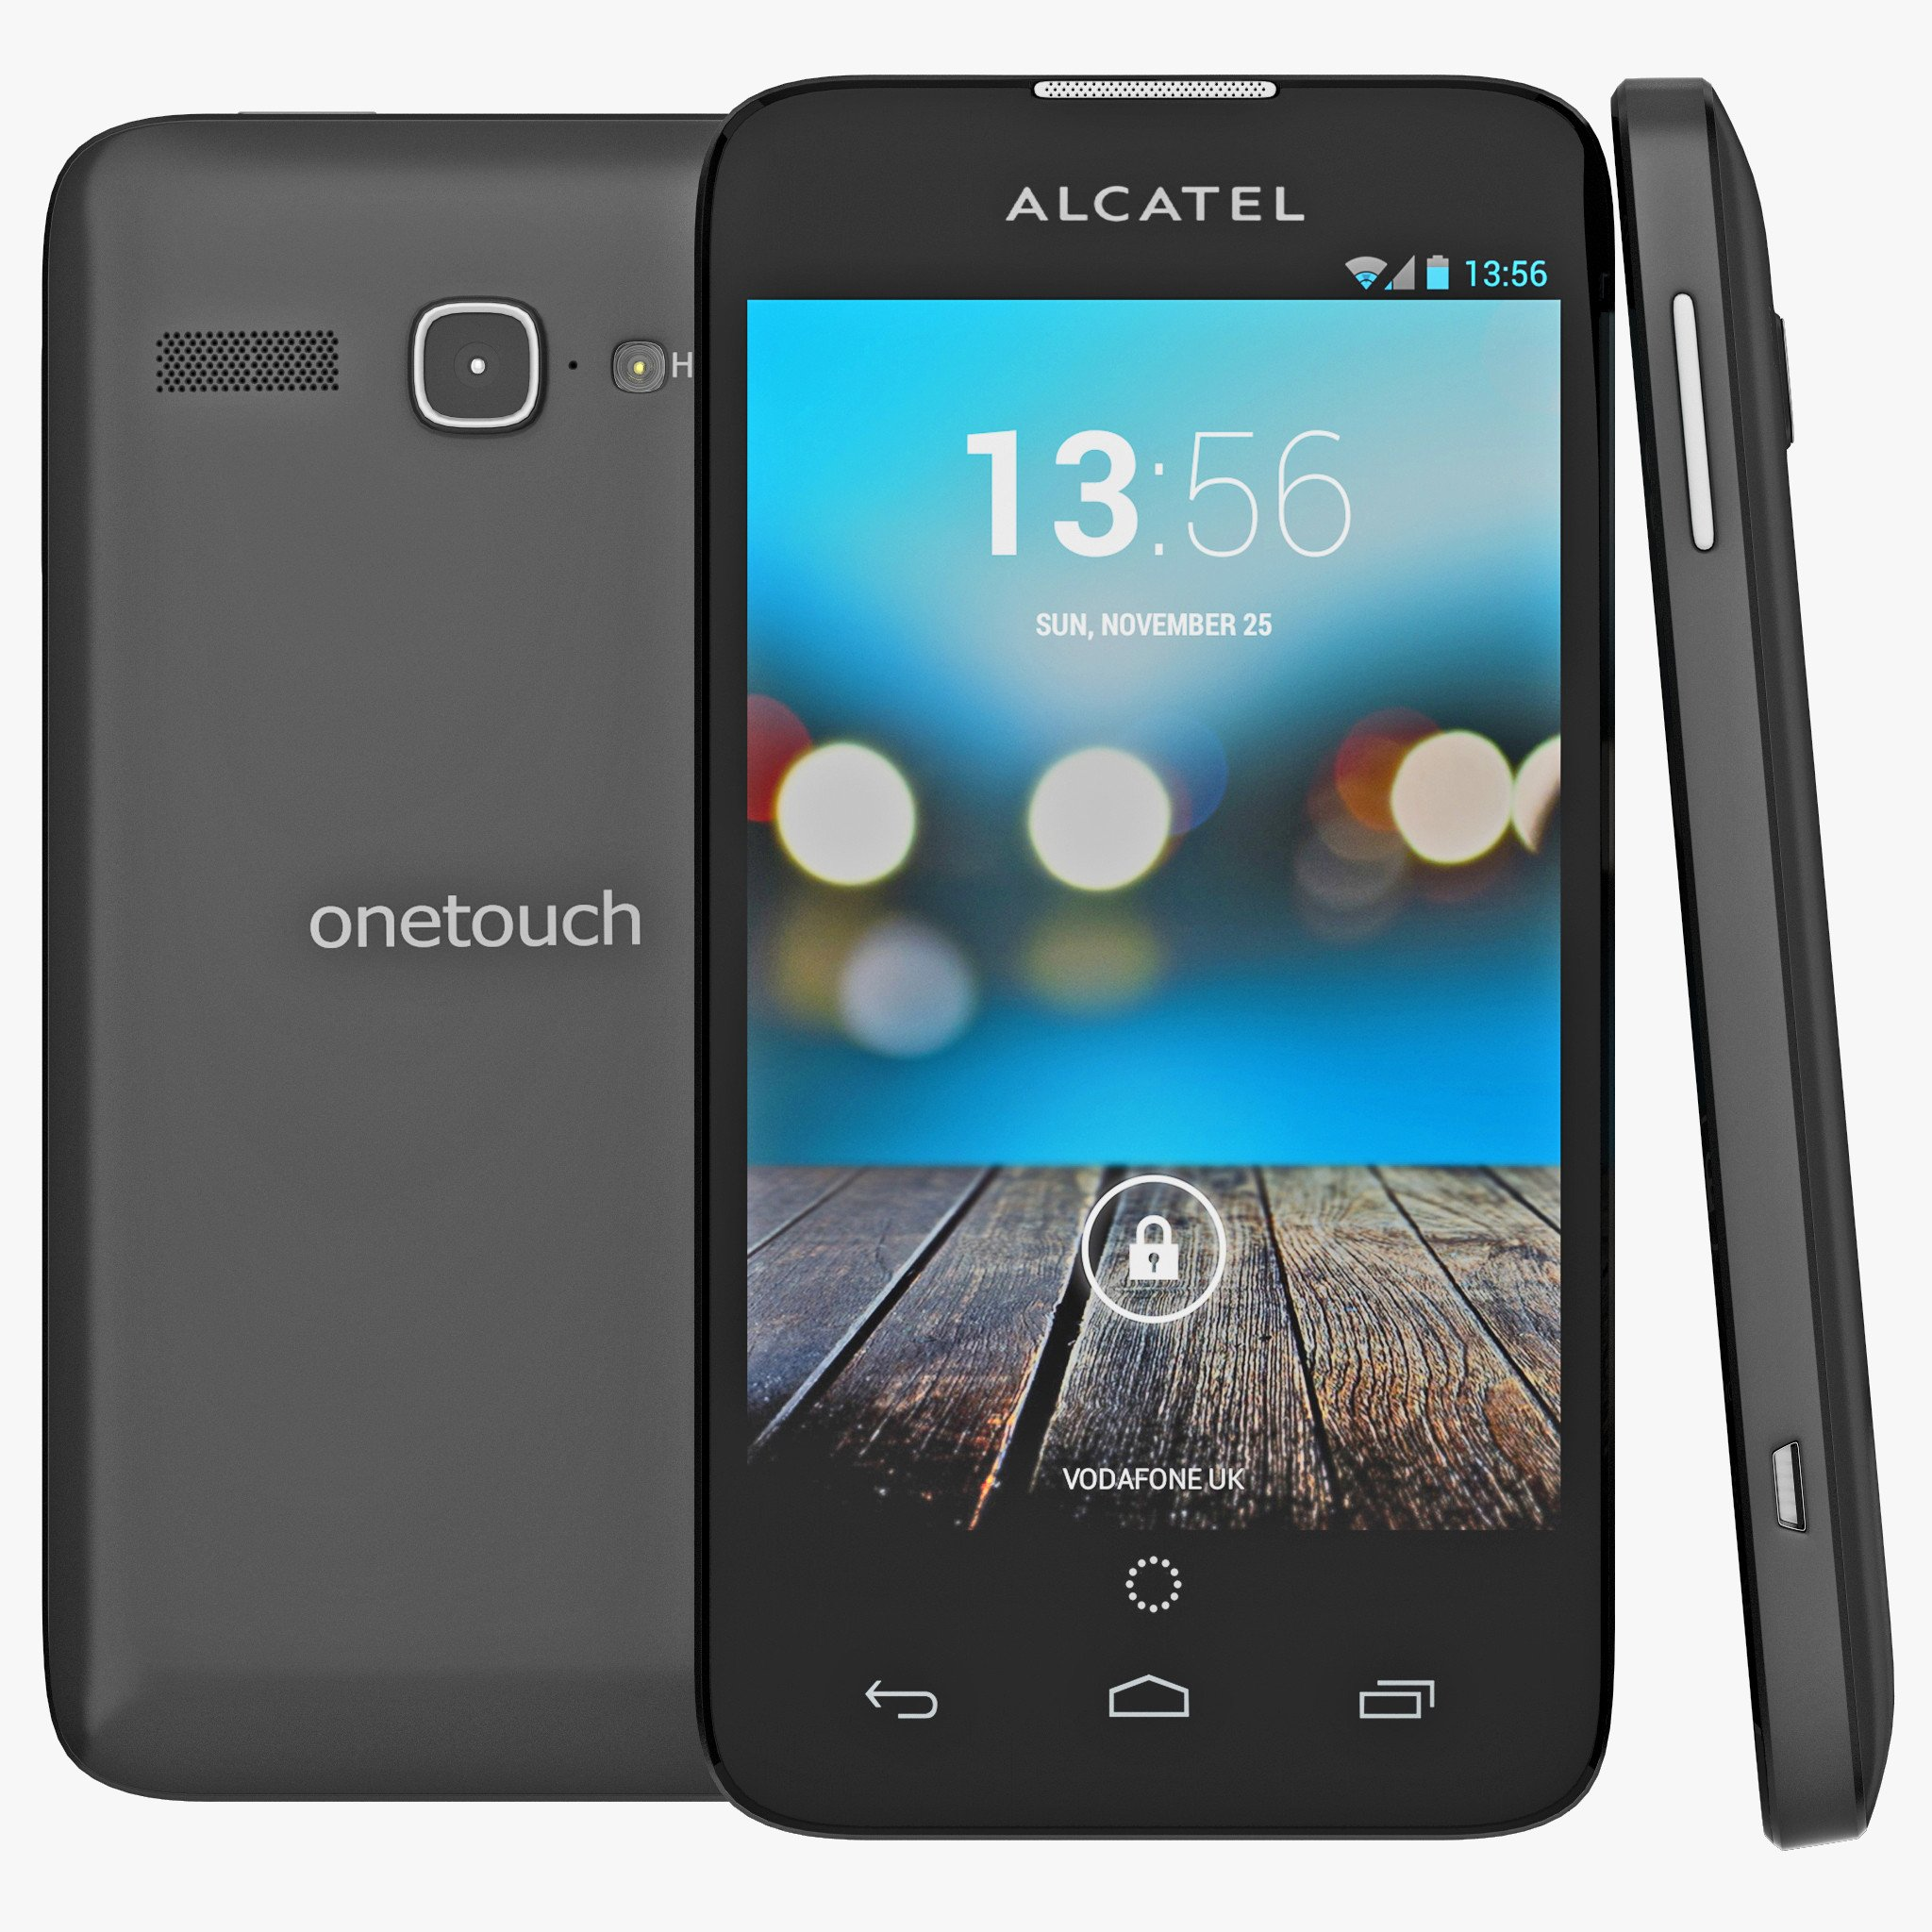 alcatel one touch snap lte usb driver for windows. Black Bedroom Furniture Sets. Home Design Ideas